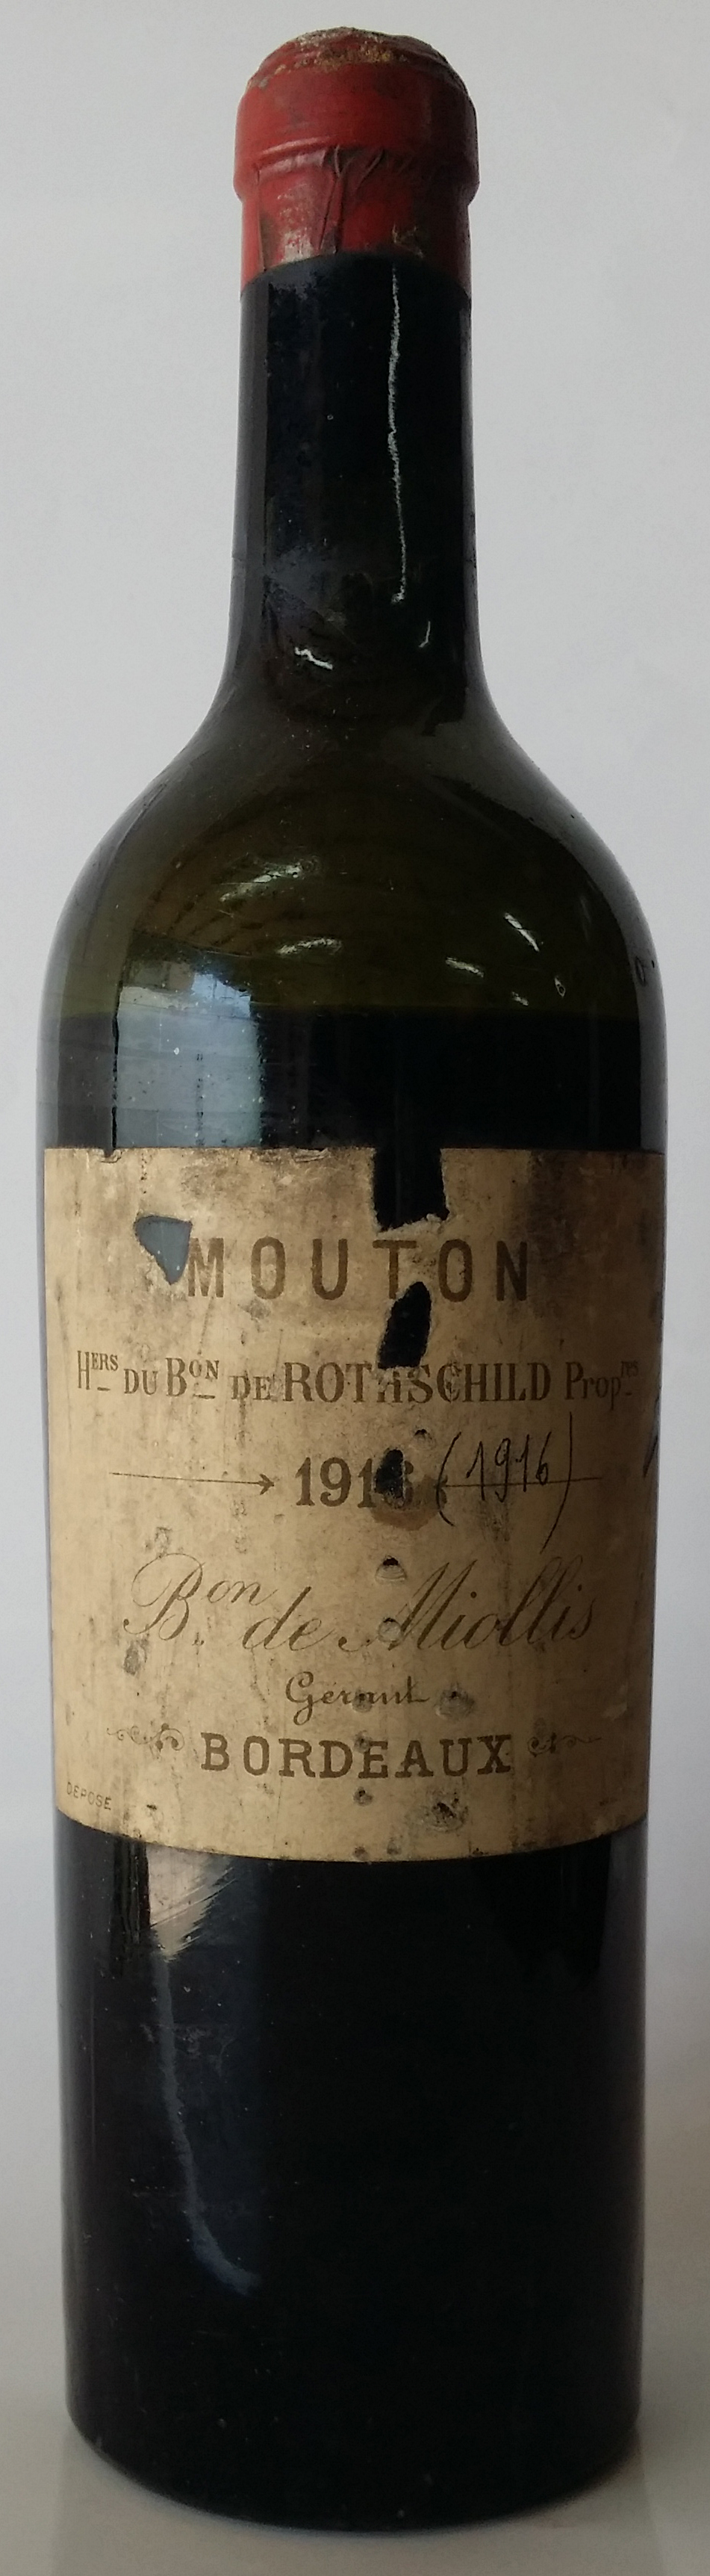 1916 Baron Philippe de Rothschild Chateau Mouton Rothschild